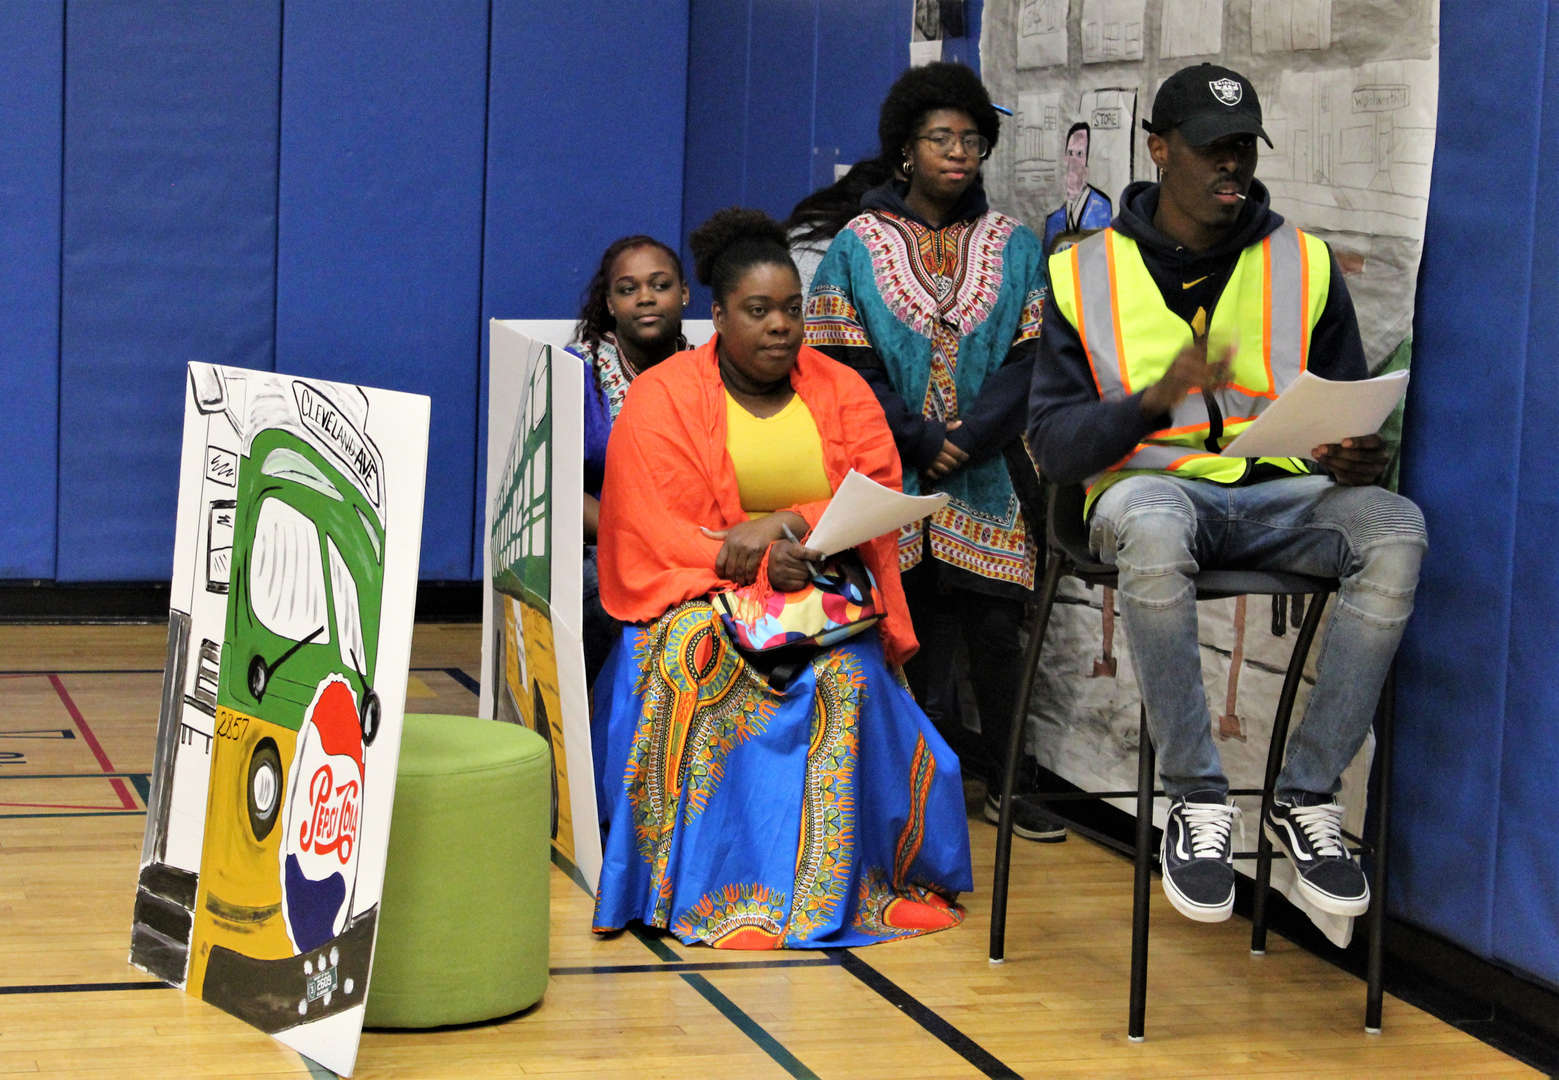 Three students and two staff members pretend to ride a bus during a Black History Month skit.